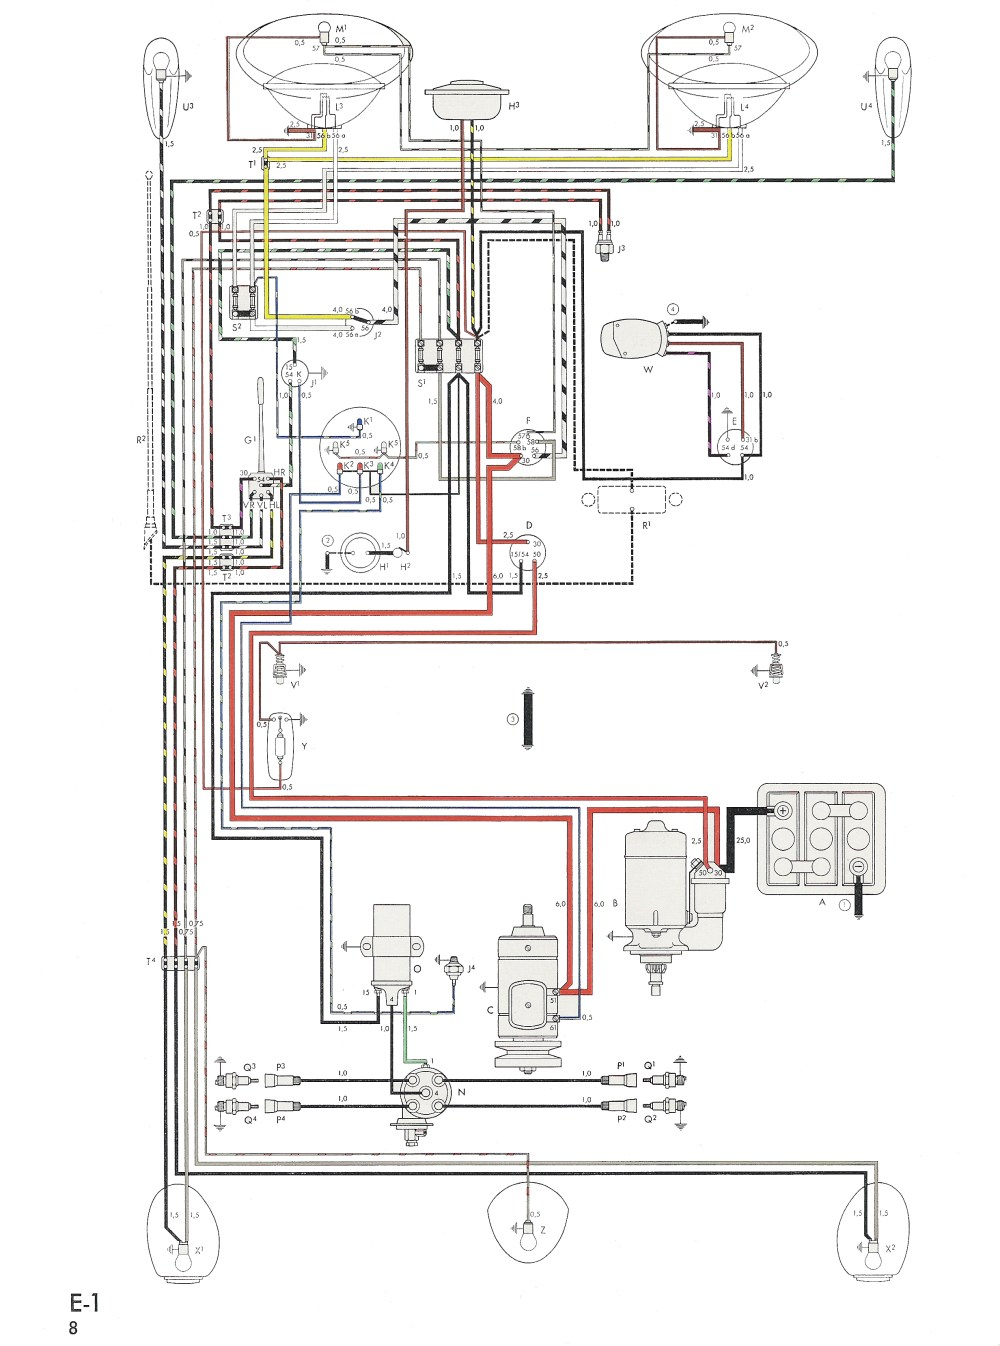 medium resolution of thesamba com type 1 wiring diagrams 70 vw beetle wiring diagram 70 vw wiring diagram